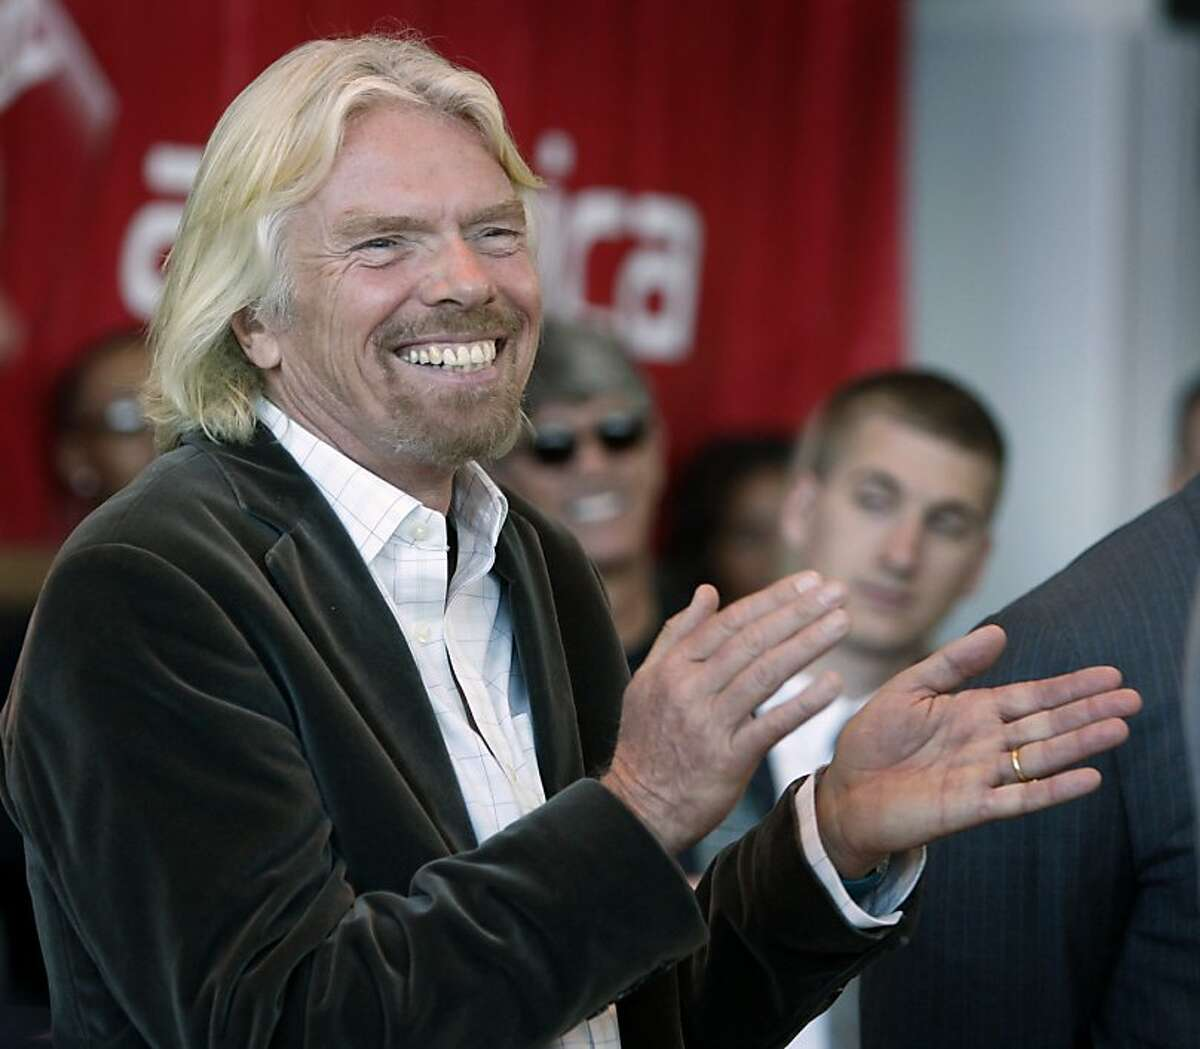 Virgin America airlines founder Sir Richard Branson beams at a reception before the airlines' inaugural flight to Toronto at San Francisco International Airport in San Francisco, Calif., on Tuesday, June 29, 2010. Ran on: 06-30-2010 In addition to Virgin America, Sir Richard Branson is also working on Virgin Galactic, a space ship travel project, and Virgin Oceanic, submarine travel.